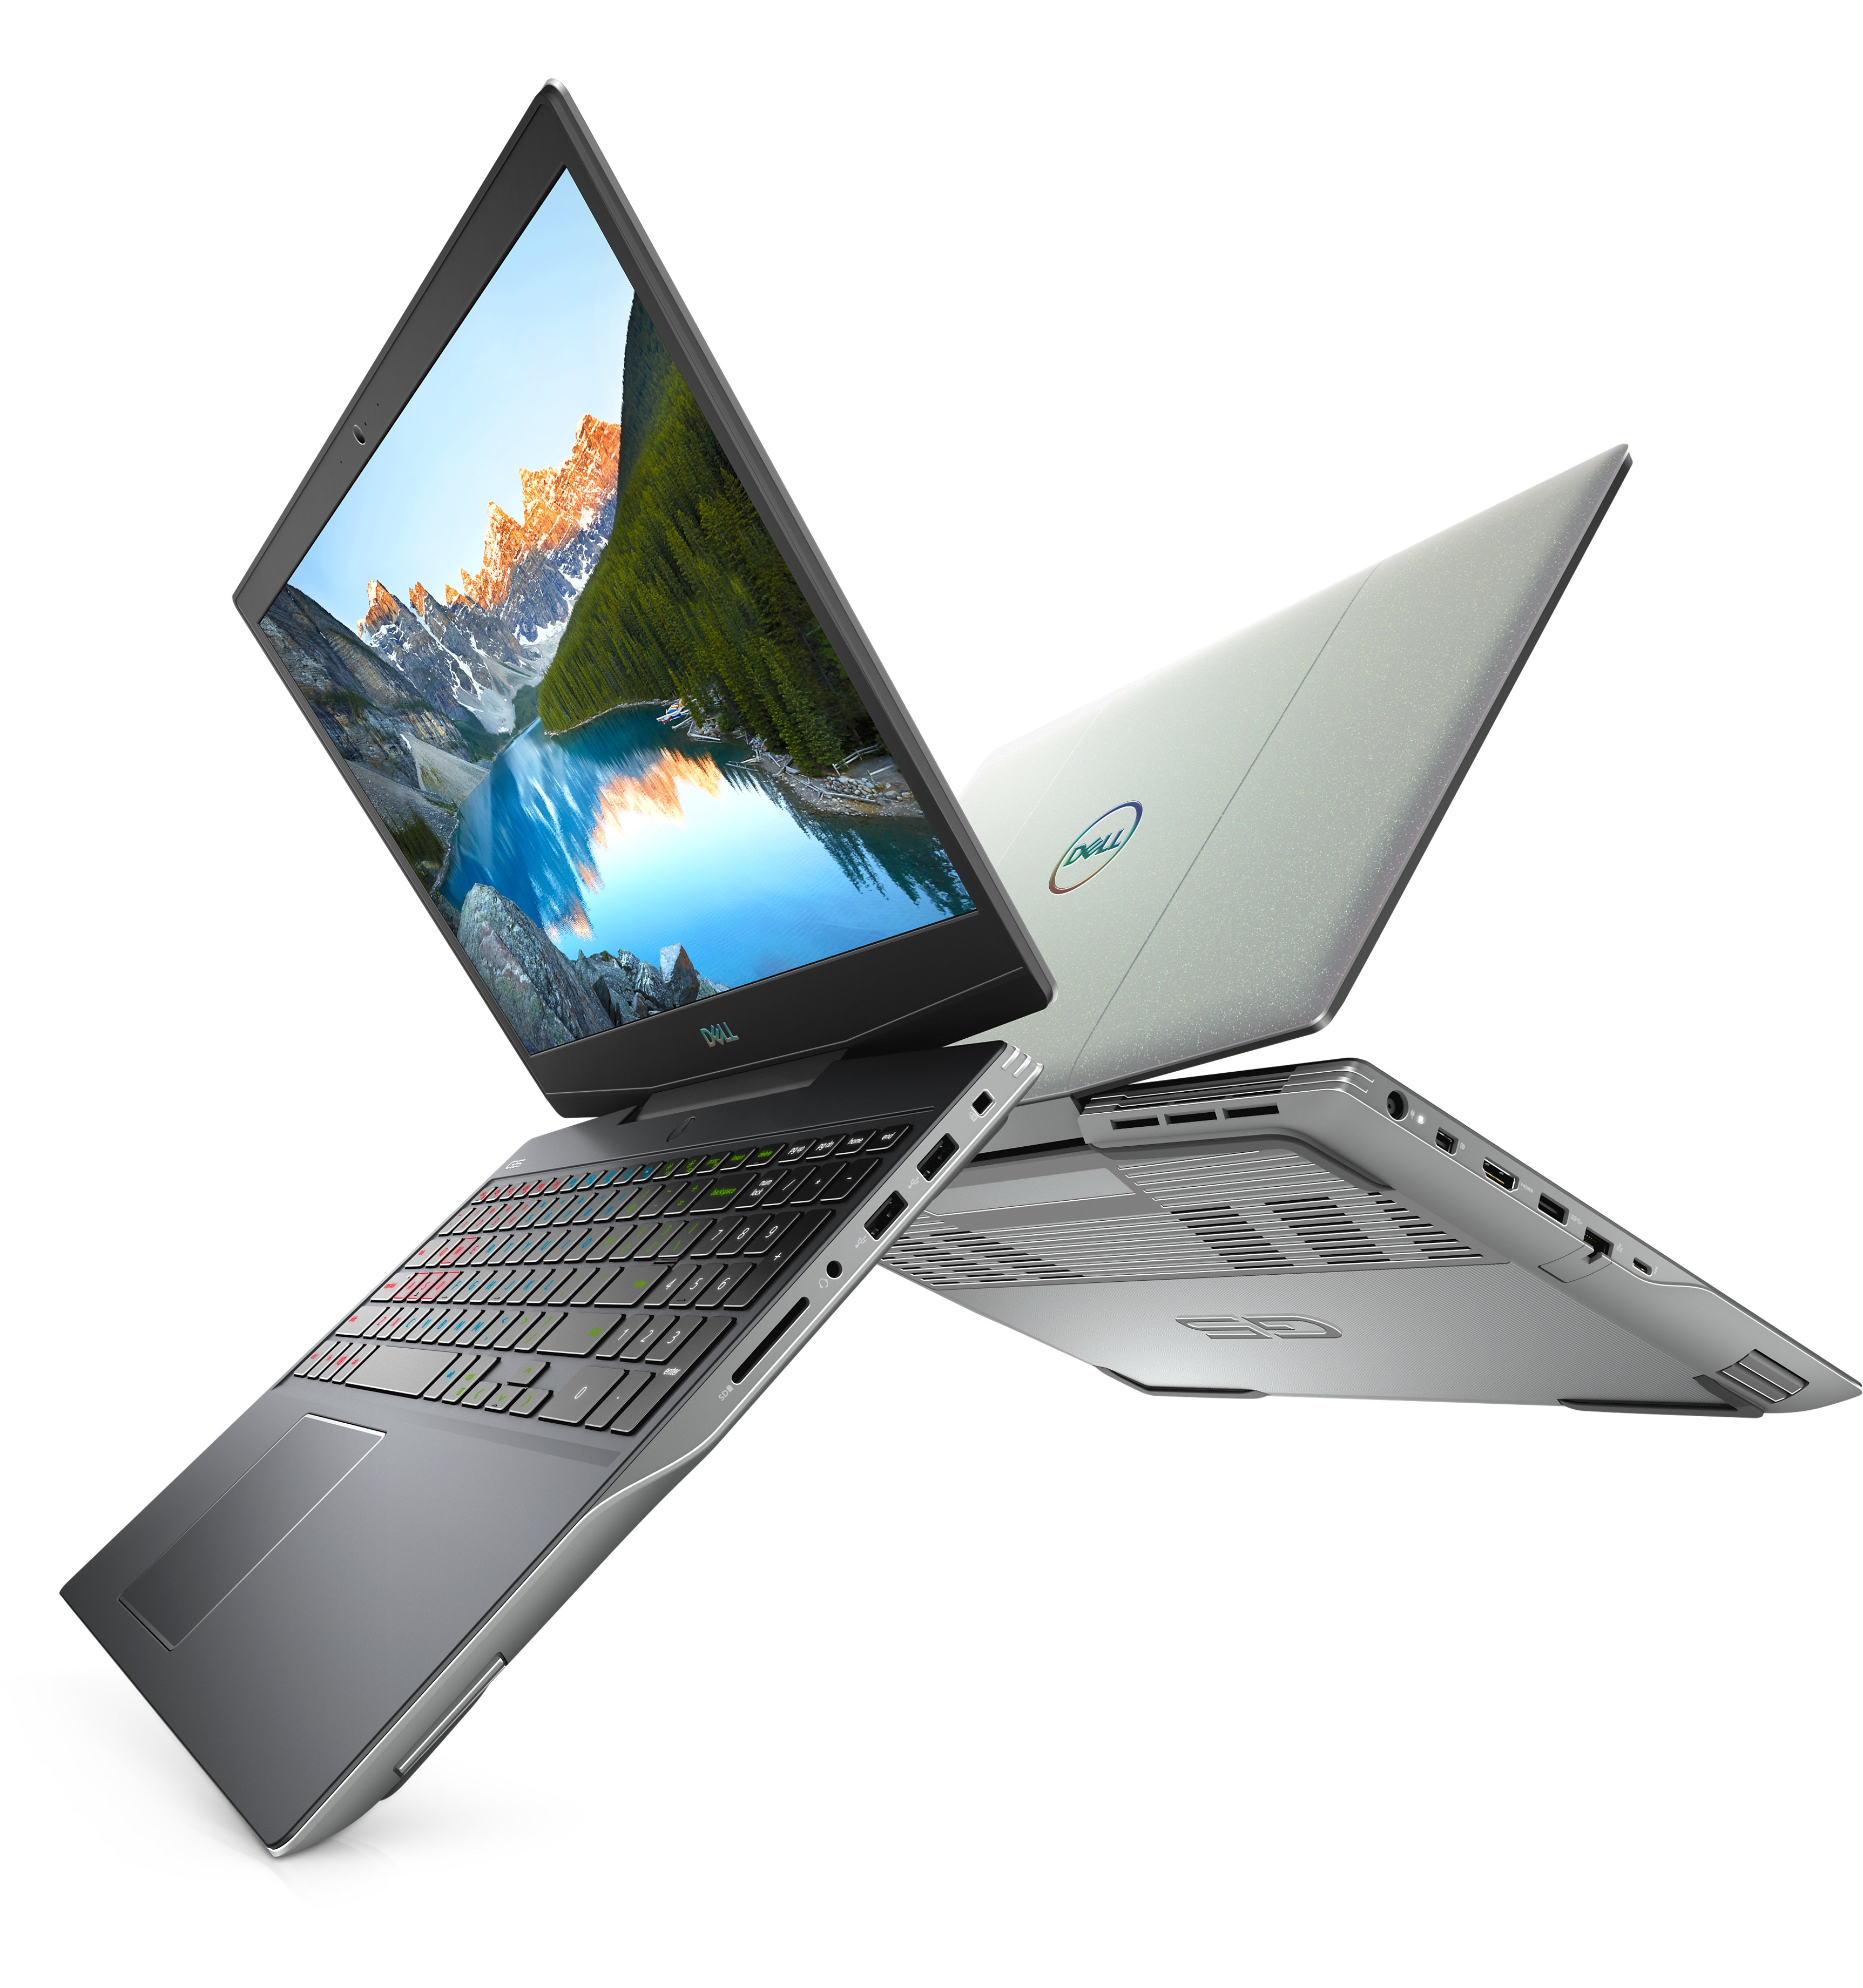 G-Series G5 15 5000 Series Non-Touch Gaming Notebook